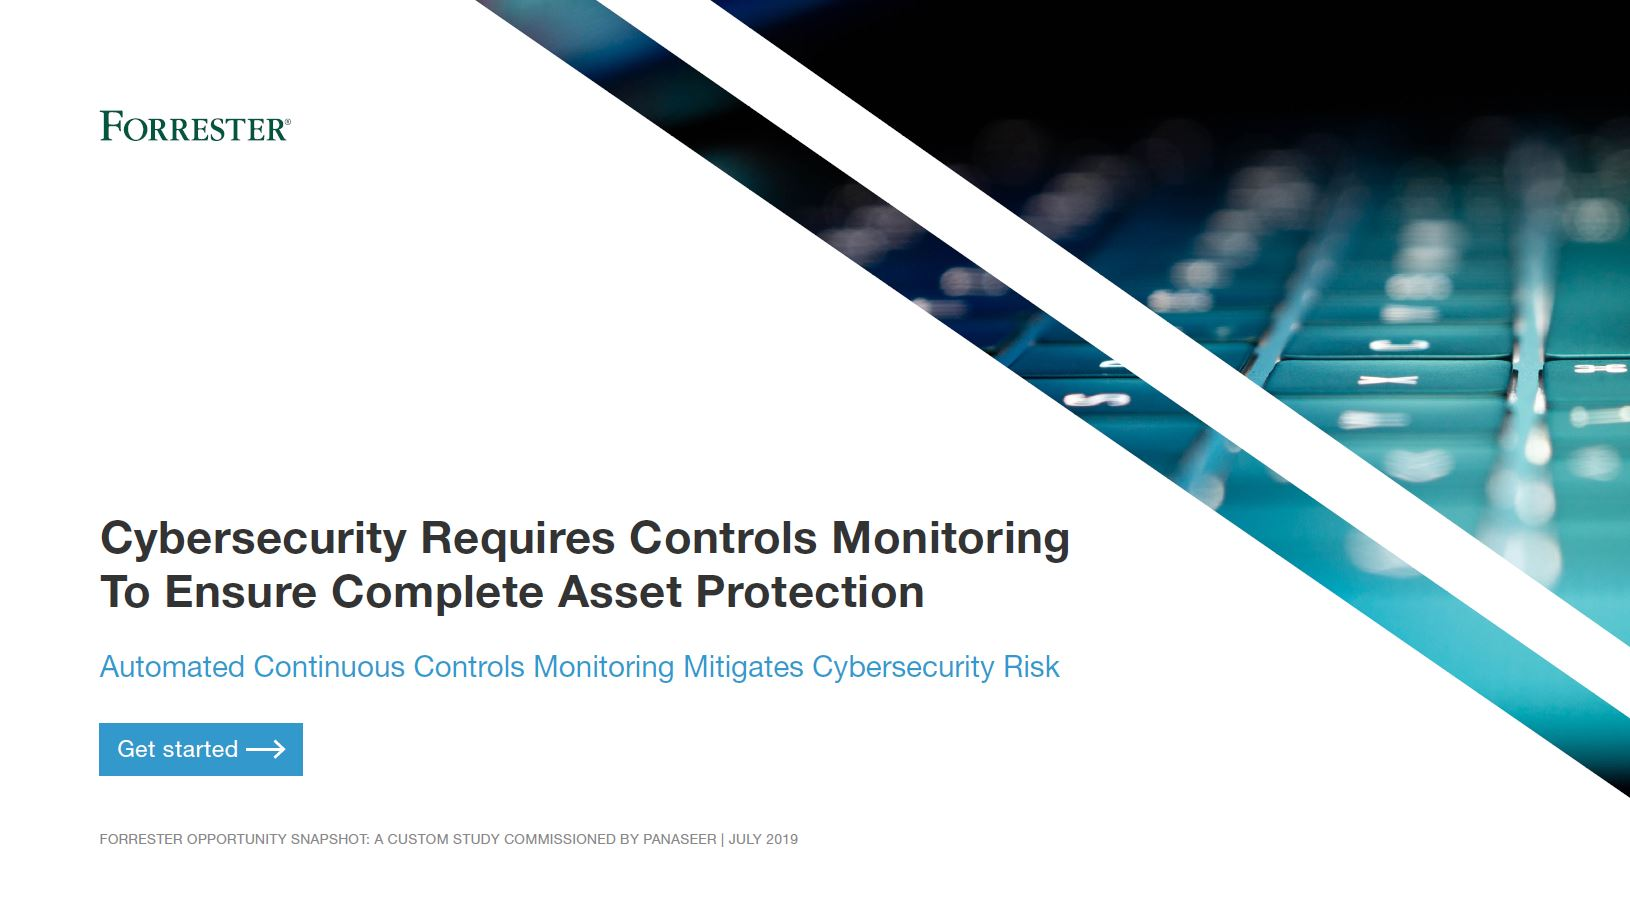 Forrester: Cybersecurity Requires Controls Monitoring to Ensure Complete Asset Protection